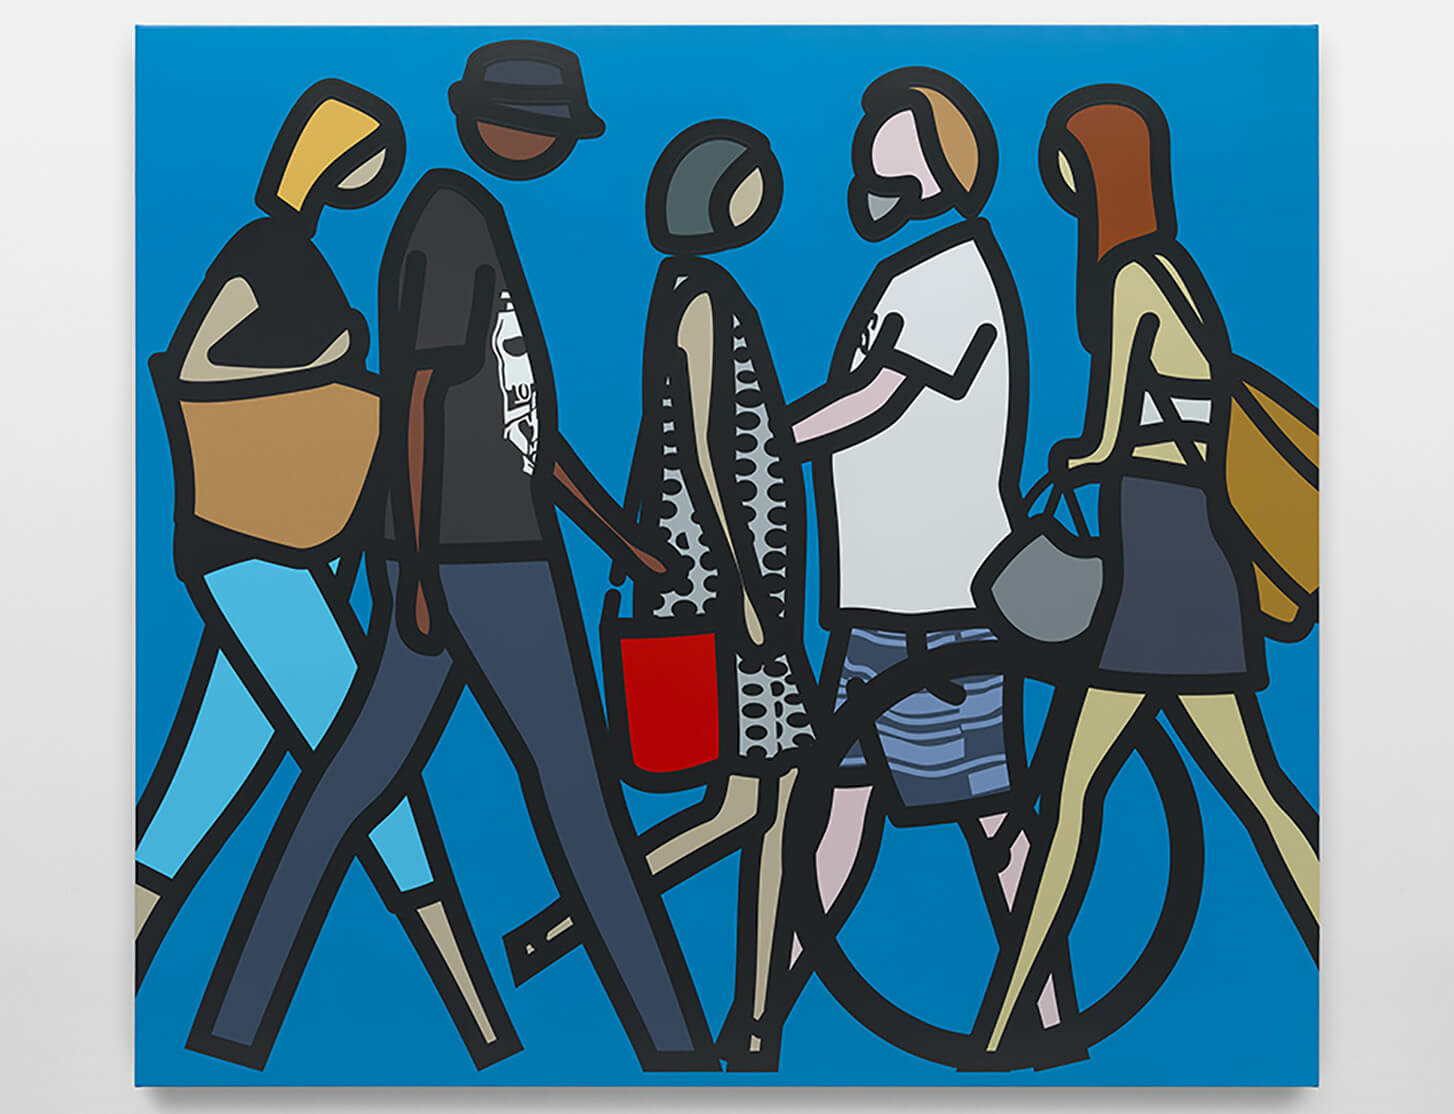 Julian opie. walking in mebourne. 1. vinyl on wooden stretcher. large